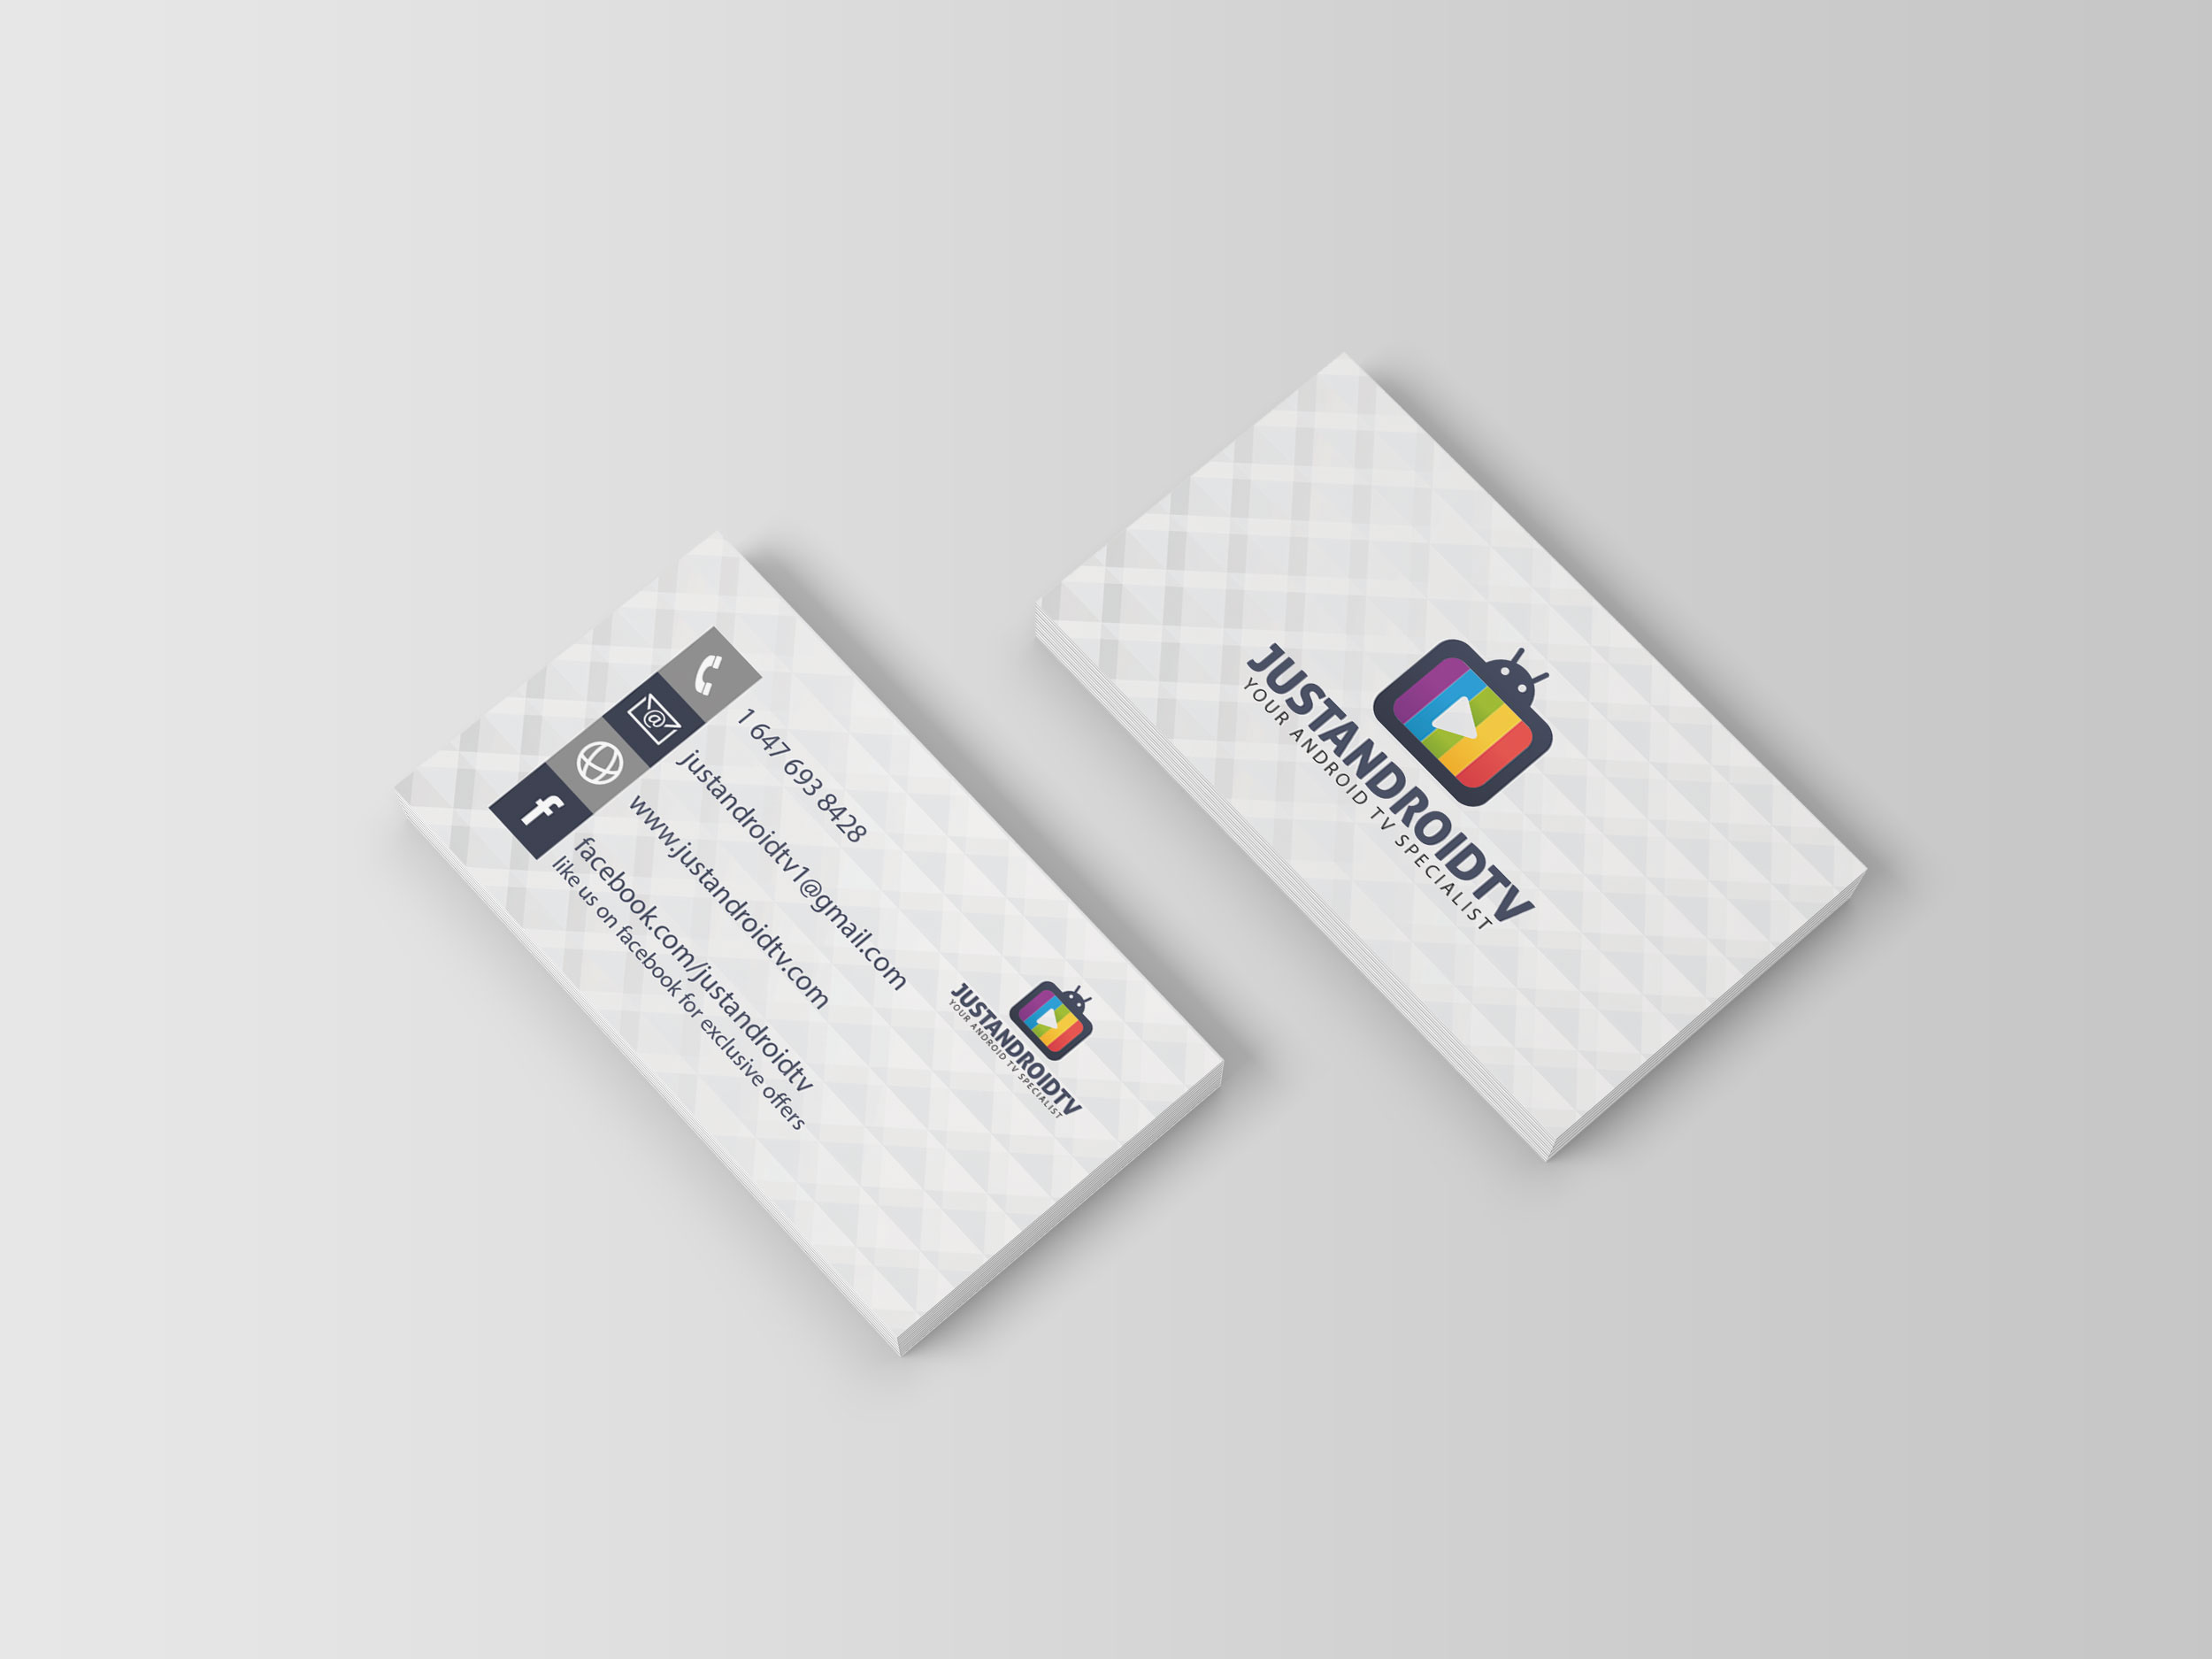 Business-Card-02-Just-Android-TV - Media Arts | Mississauga-GTA ...